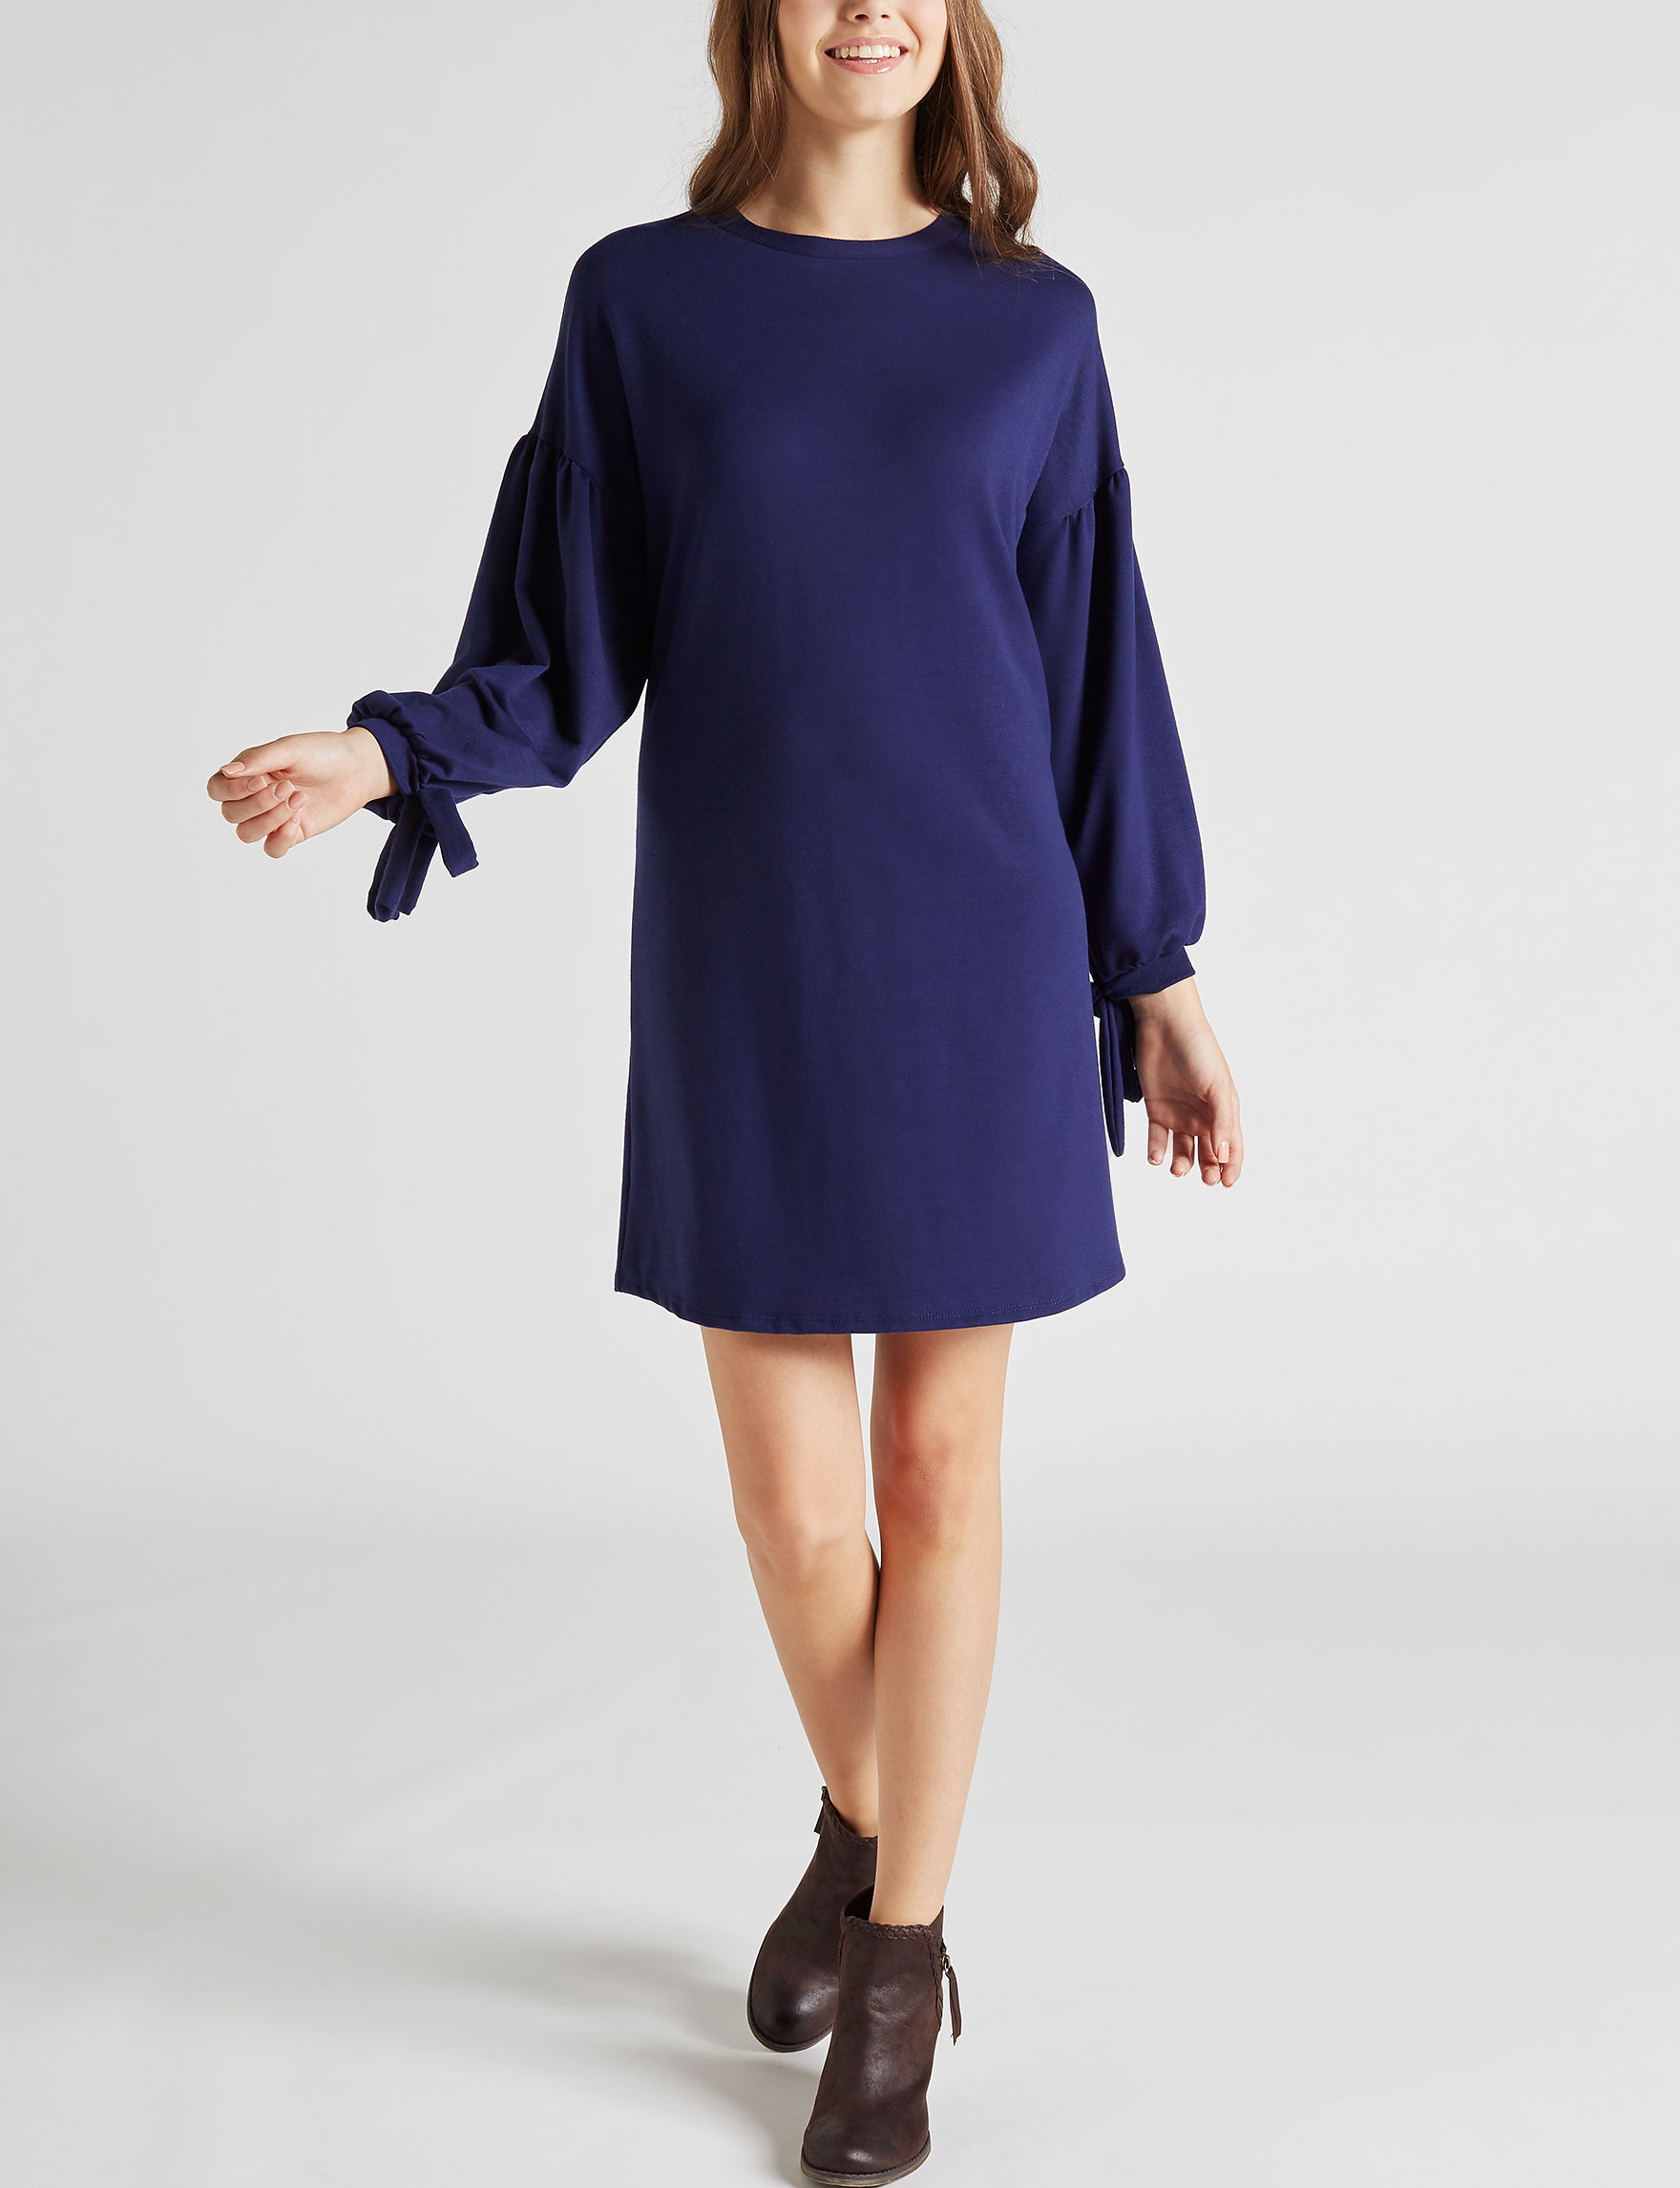 Wishful Park Navy Everyday & Casual Shift Dresses